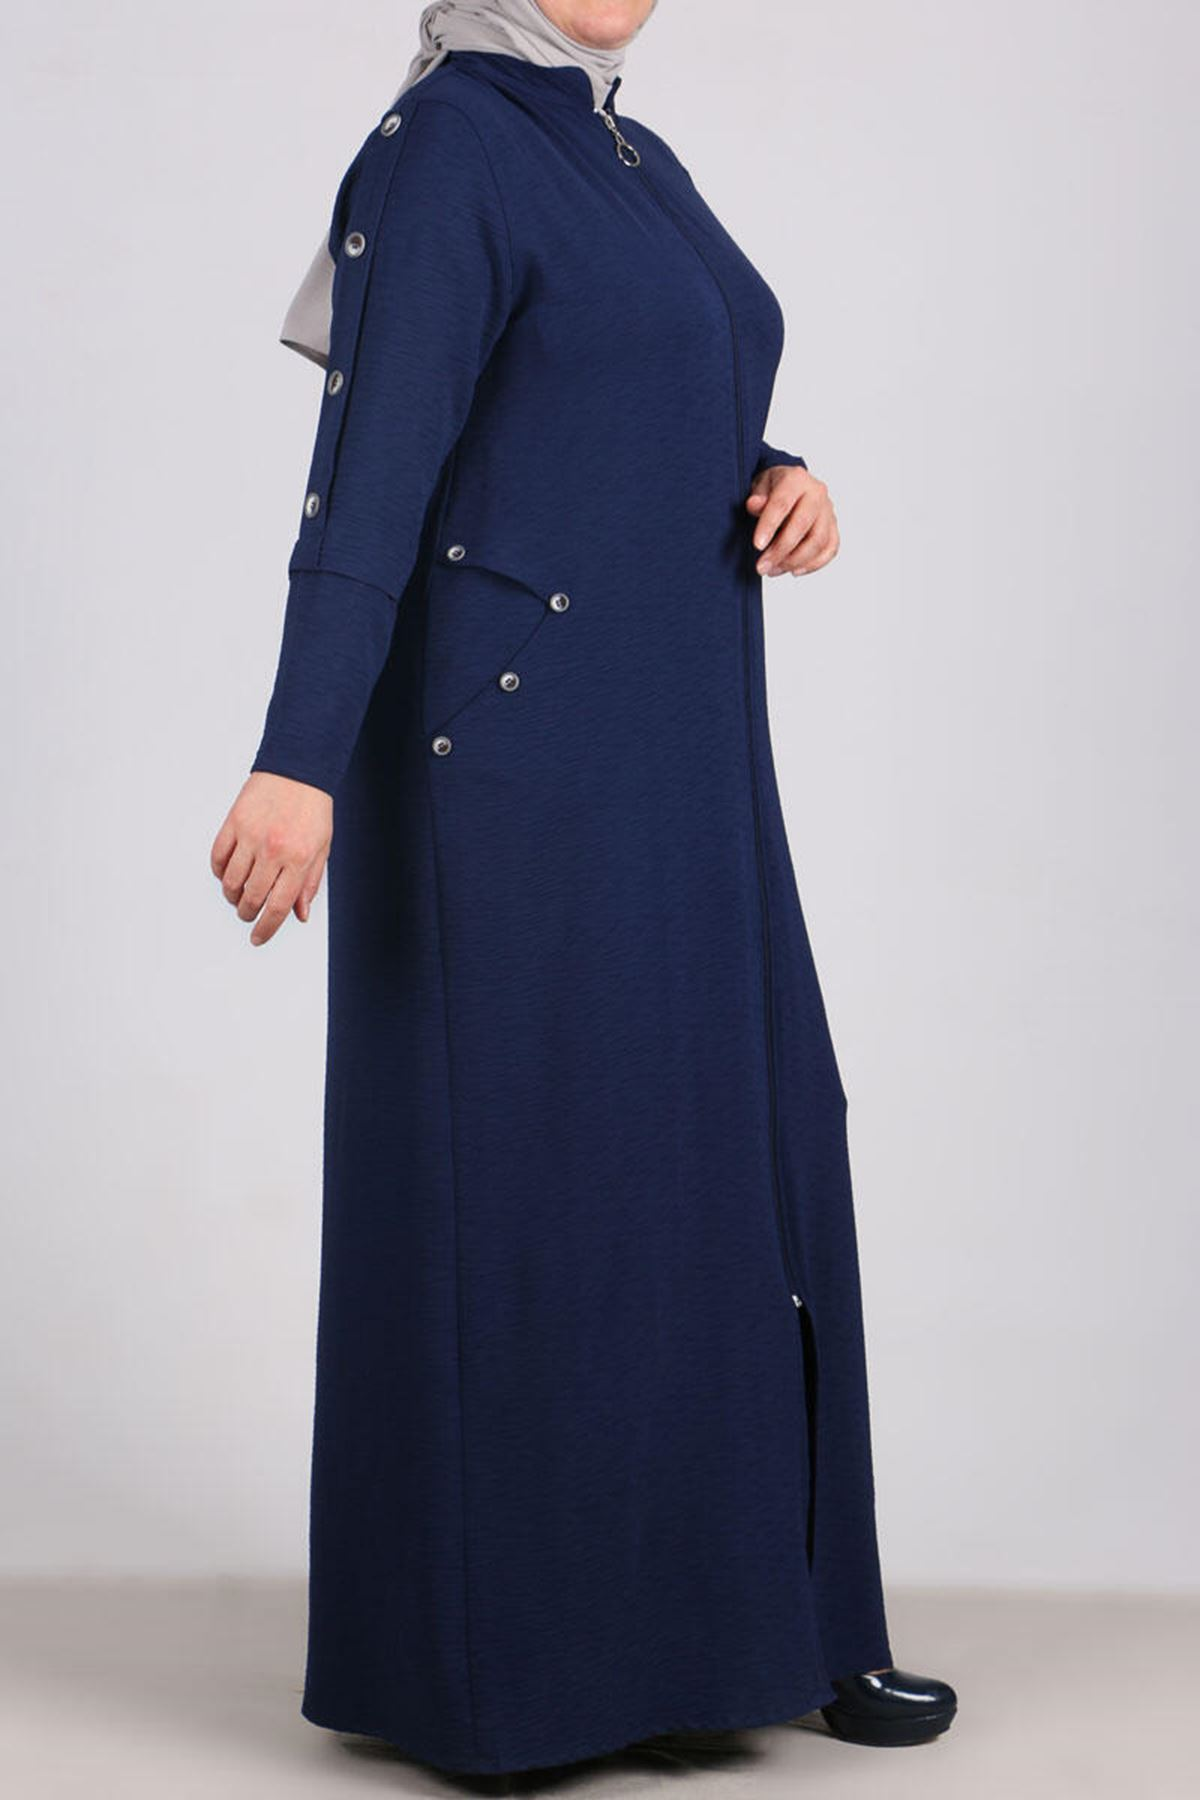 6036 Plus Size Button Detailed Topcoat- Navy Blue